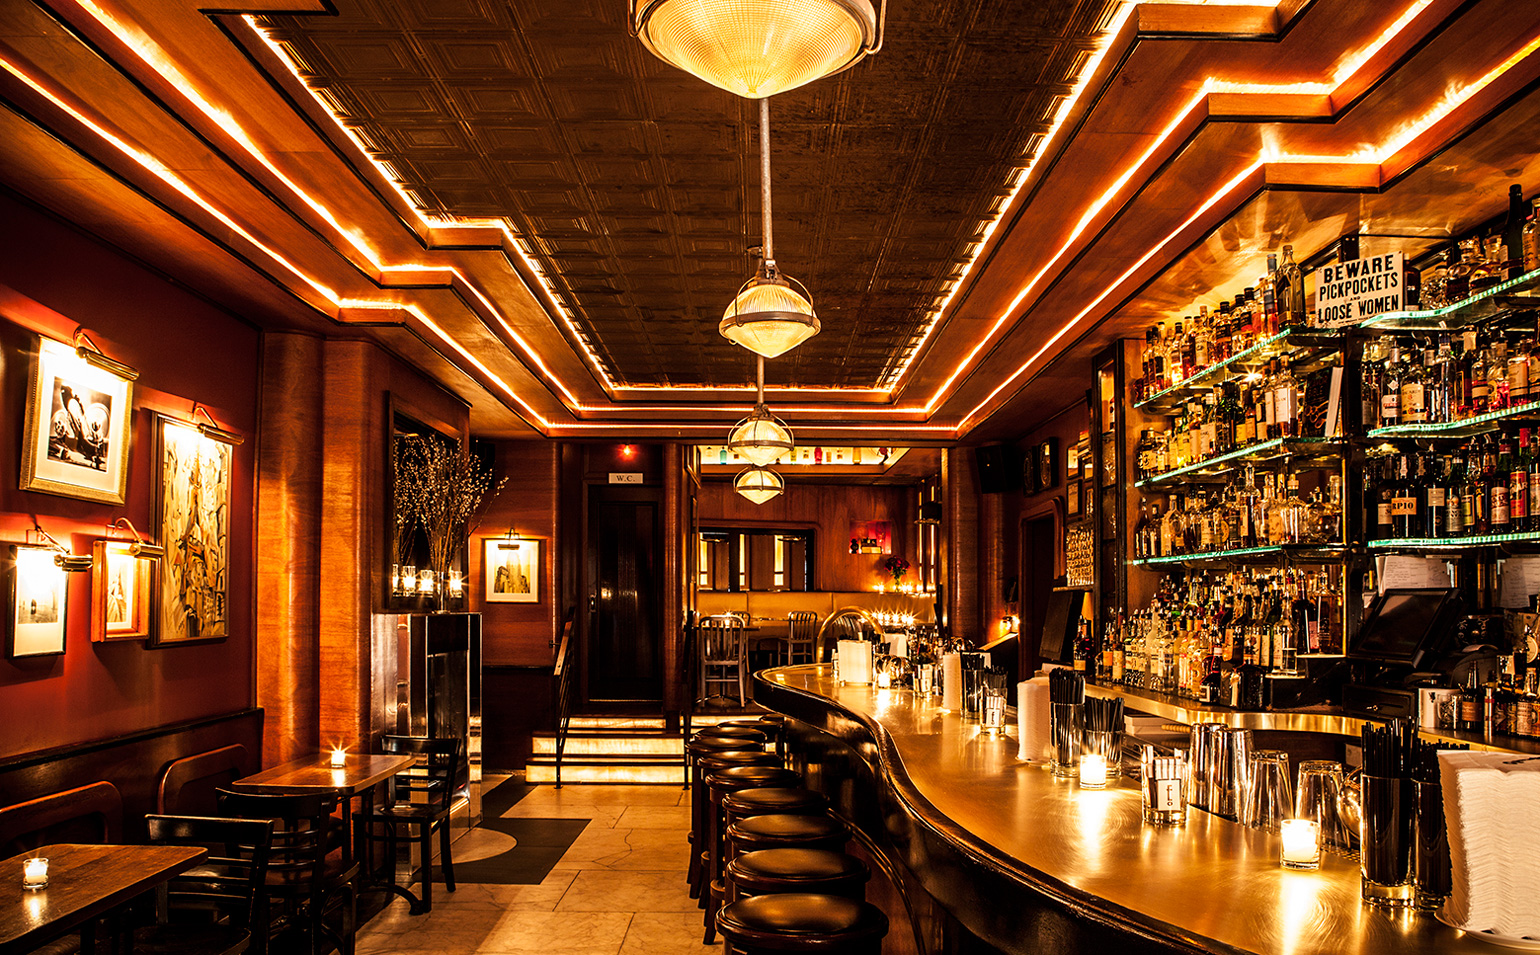 Best Bars in the World - employees only nyc - employees only - new york bars - best bars in new york - luxury bars - nyc bars - places to eat in nyc